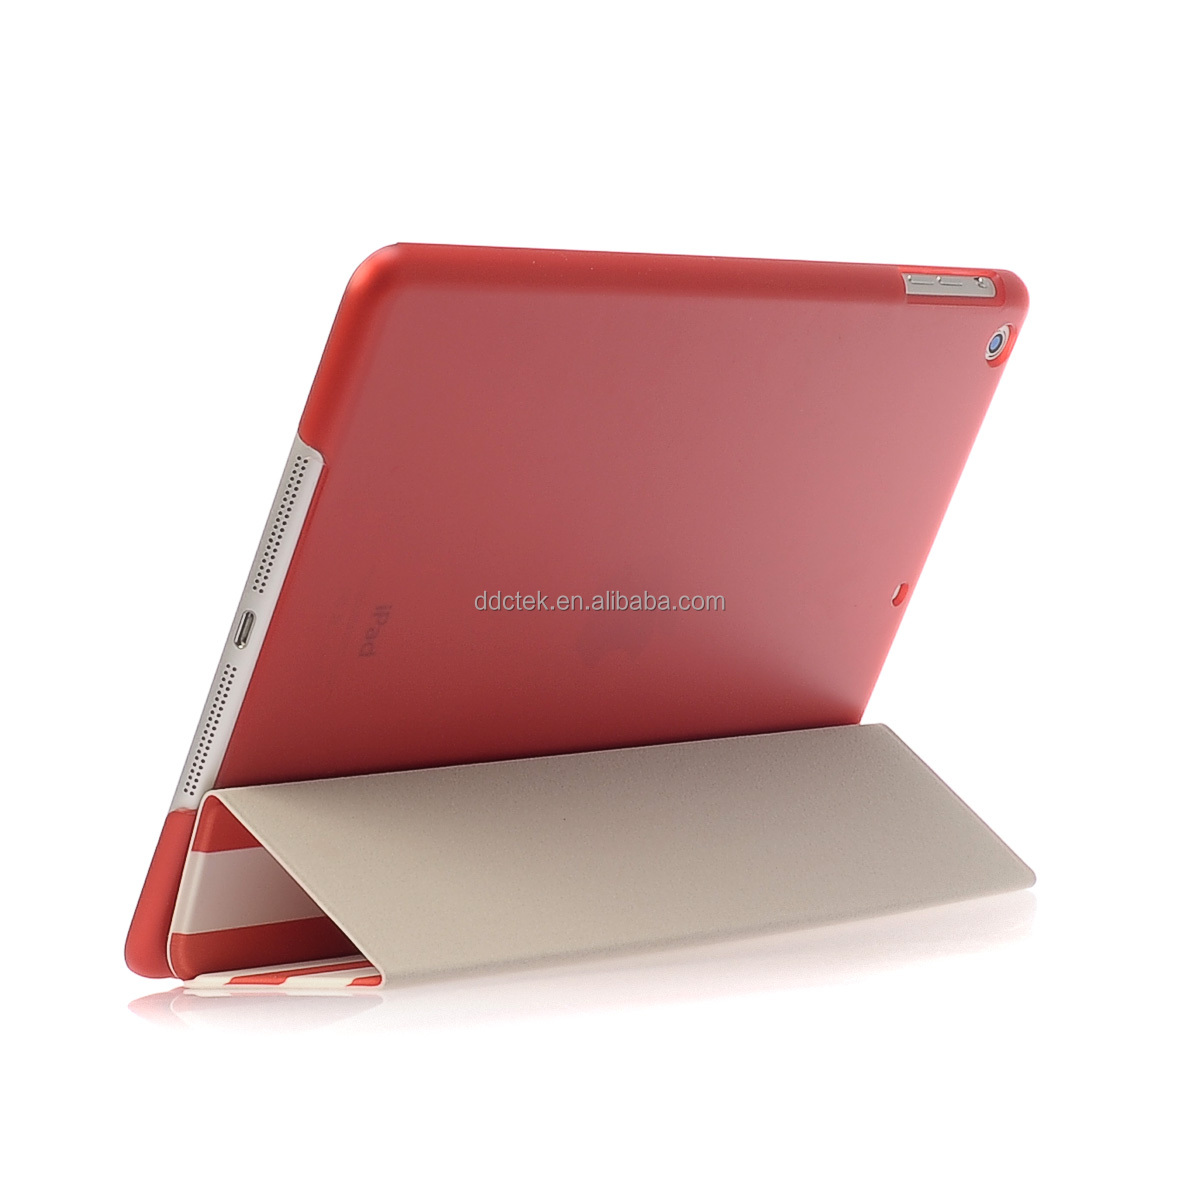 Top quality factory price custom PC PU hard shell cover case for ipad air case for ipad mini case Red